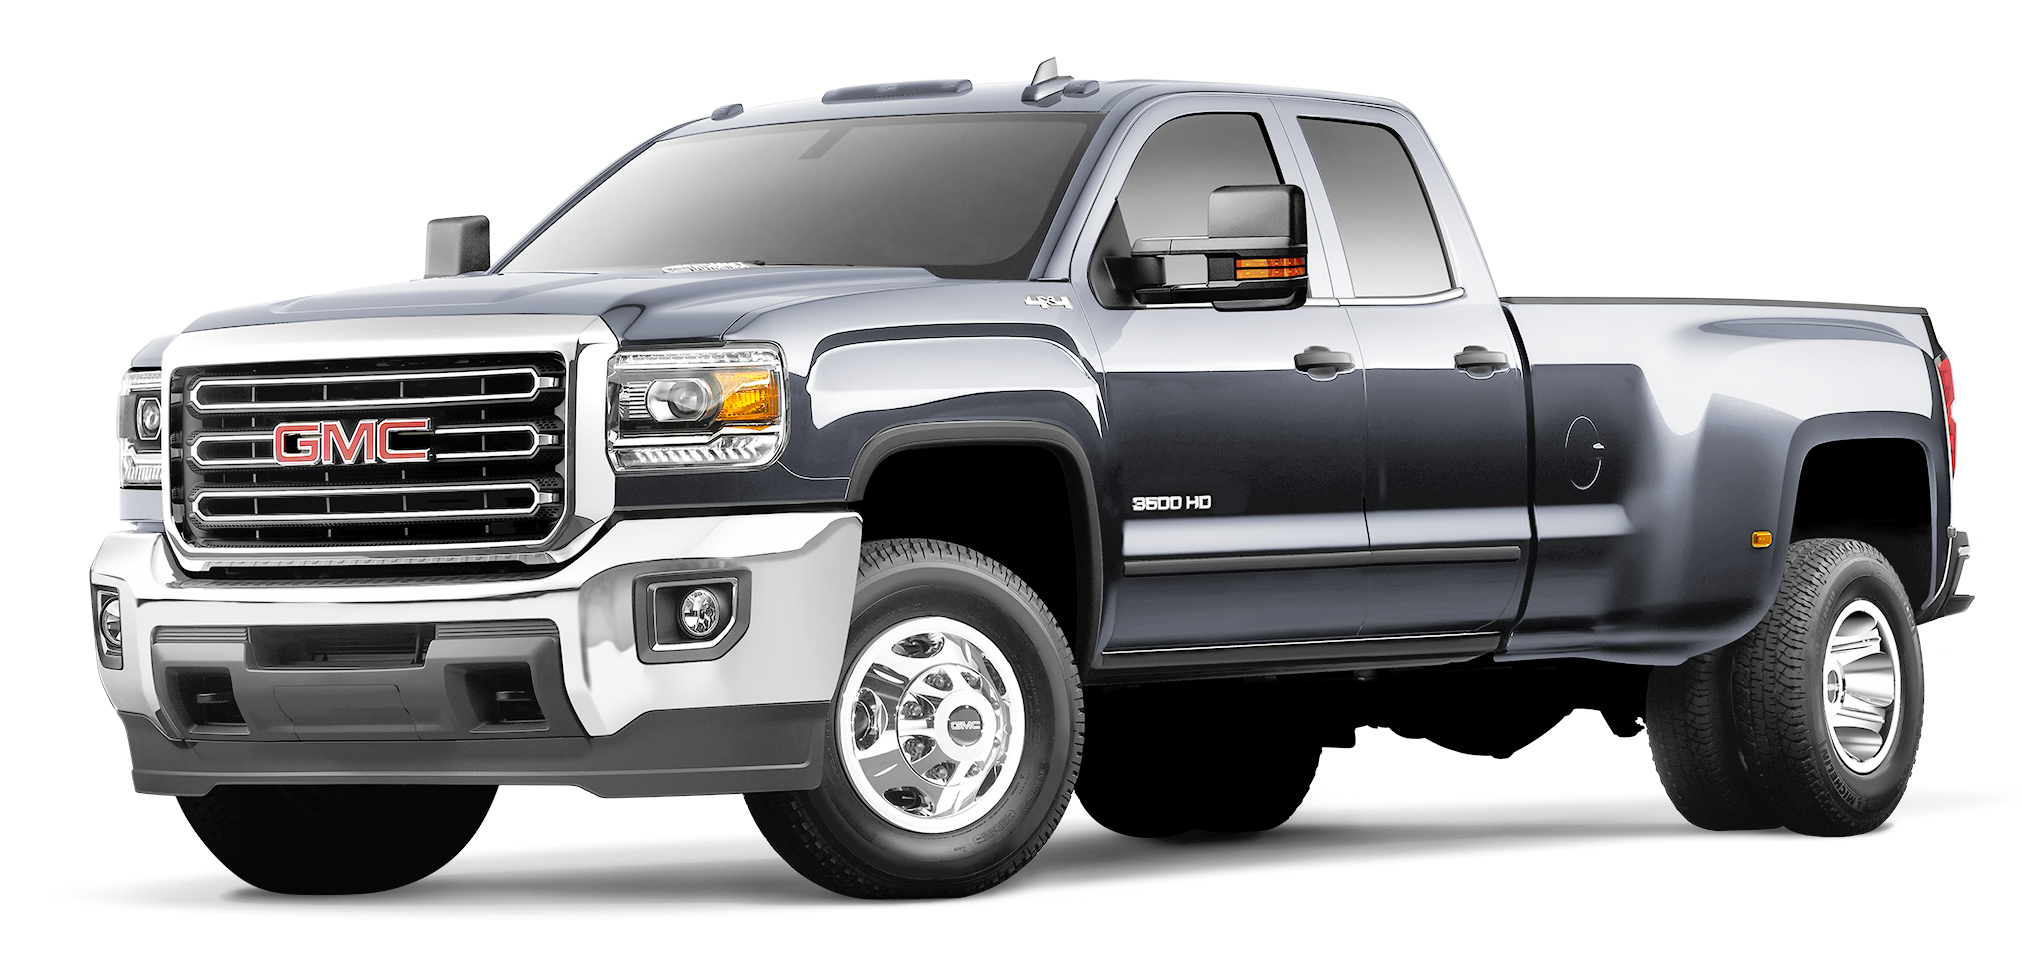 GMC Sierra 3500 HD Steel